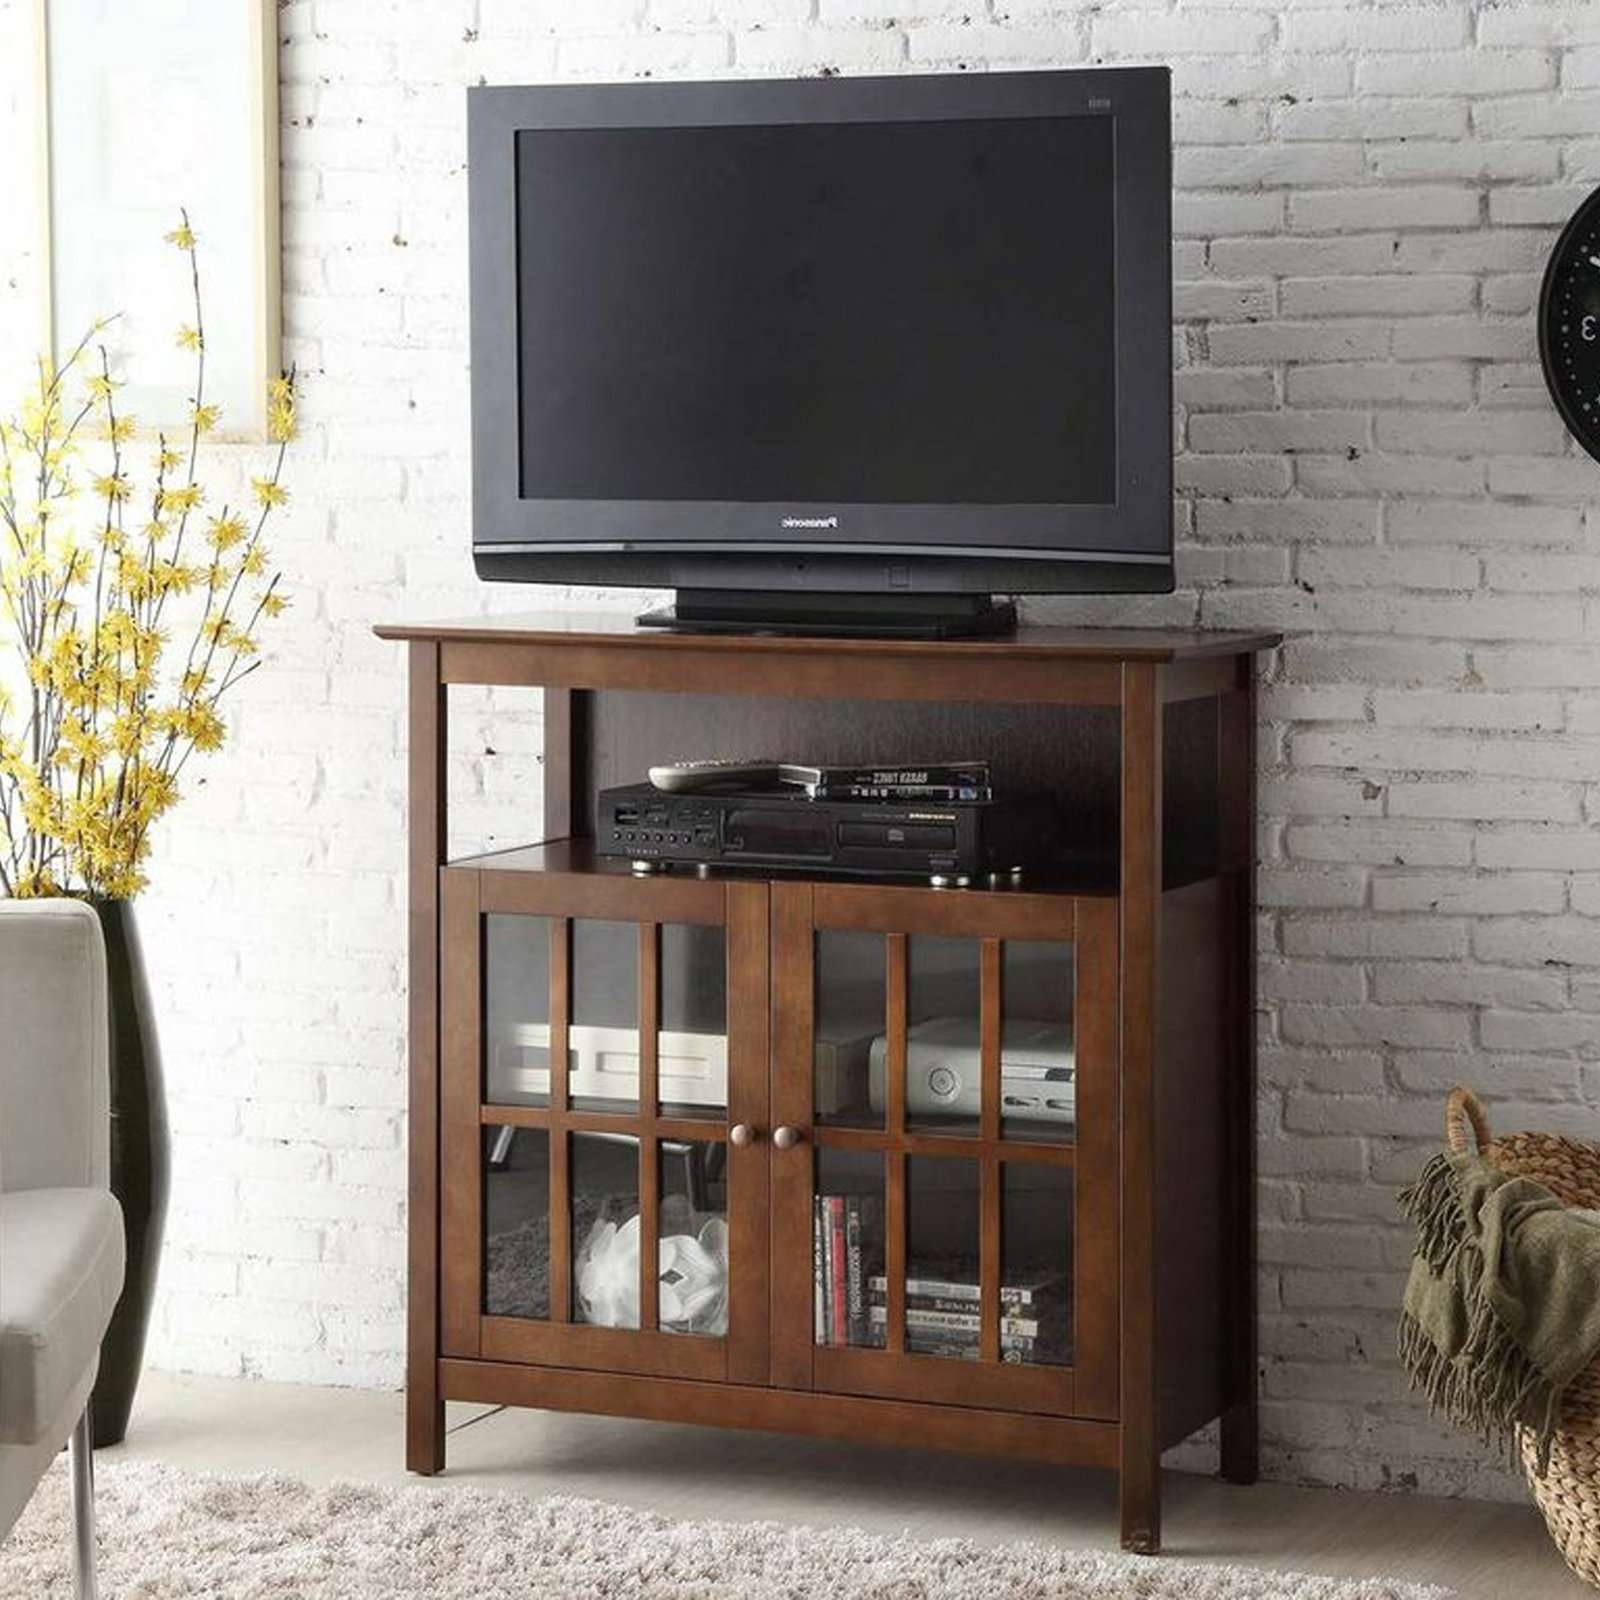 Tall Corner Tv Stand With Mount (View 7 of 15)